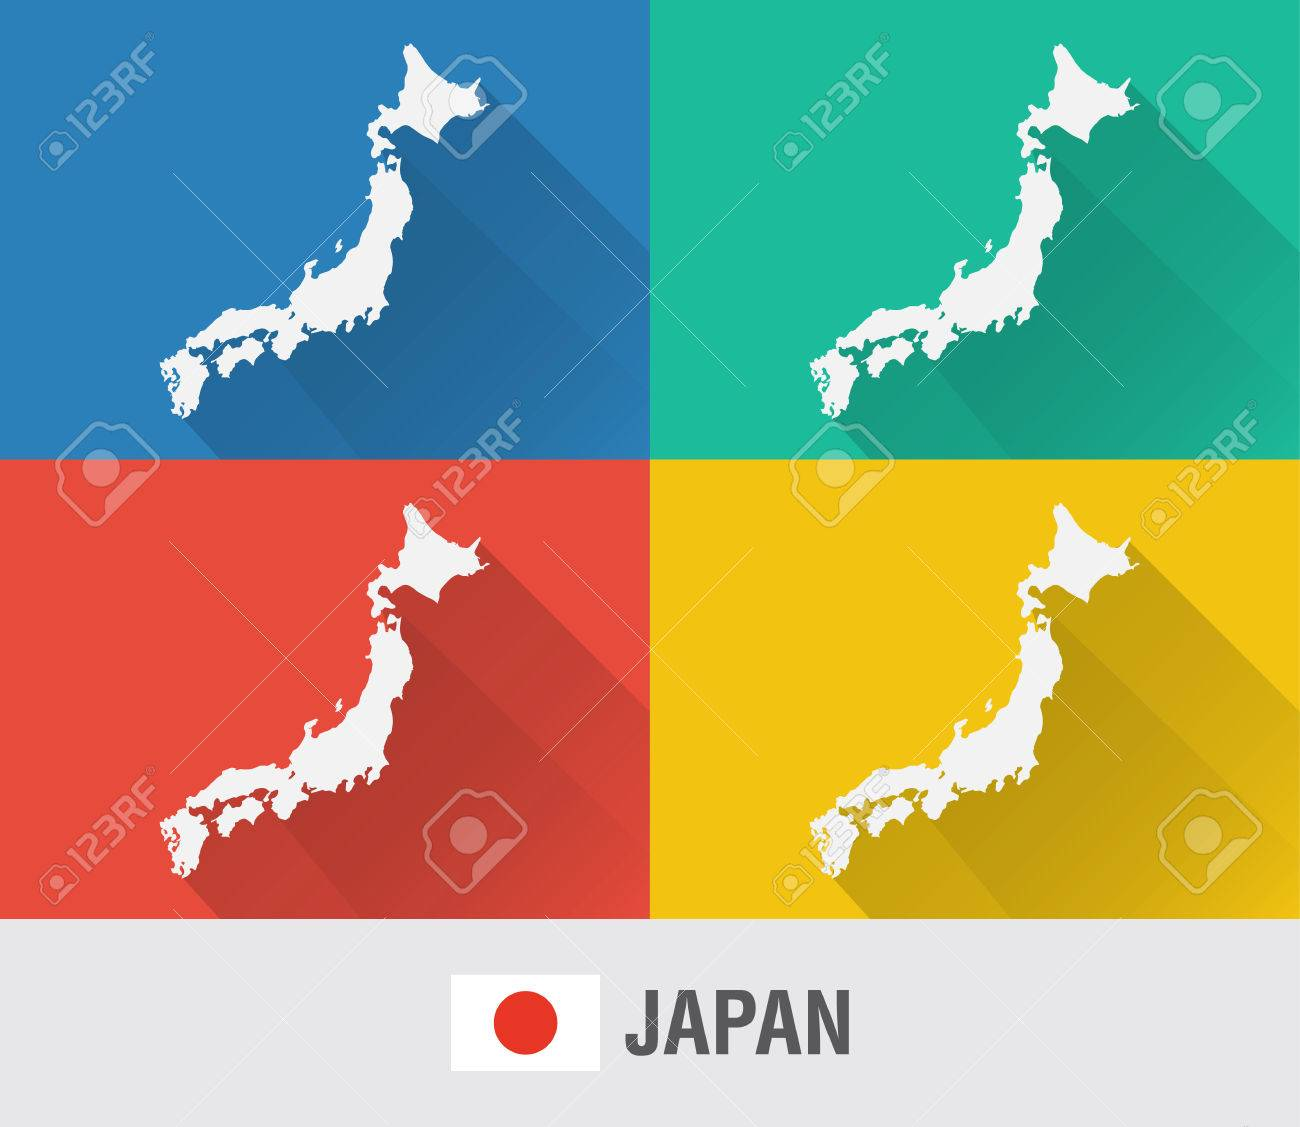 Japan world map in flat style with 4 colors modern map design japan world map in flat style with 4 colors modern map design stock vector gumiabroncs Choice Image